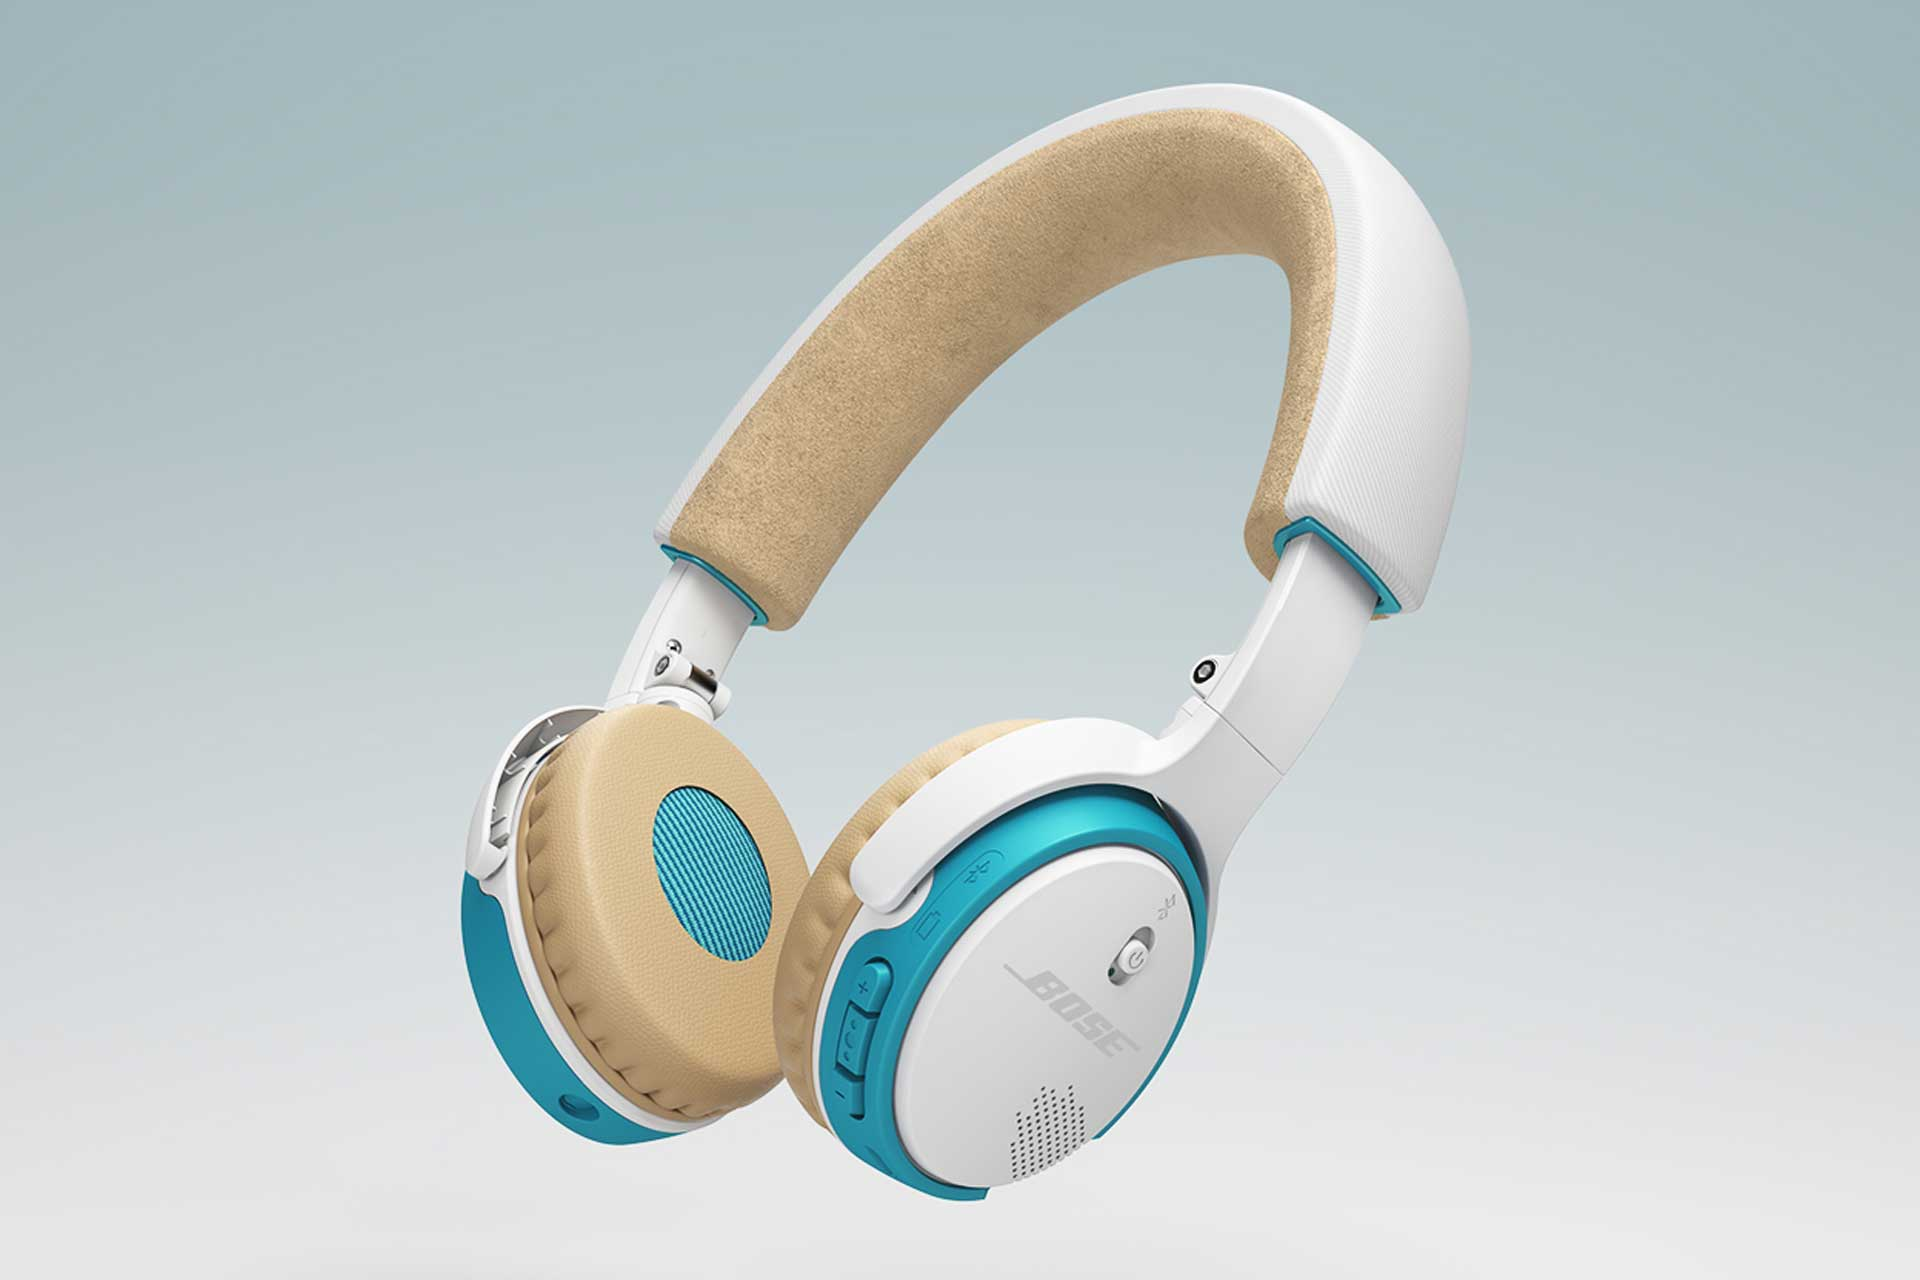 Side view image of blue, white, and tan BOSE wireless headphones